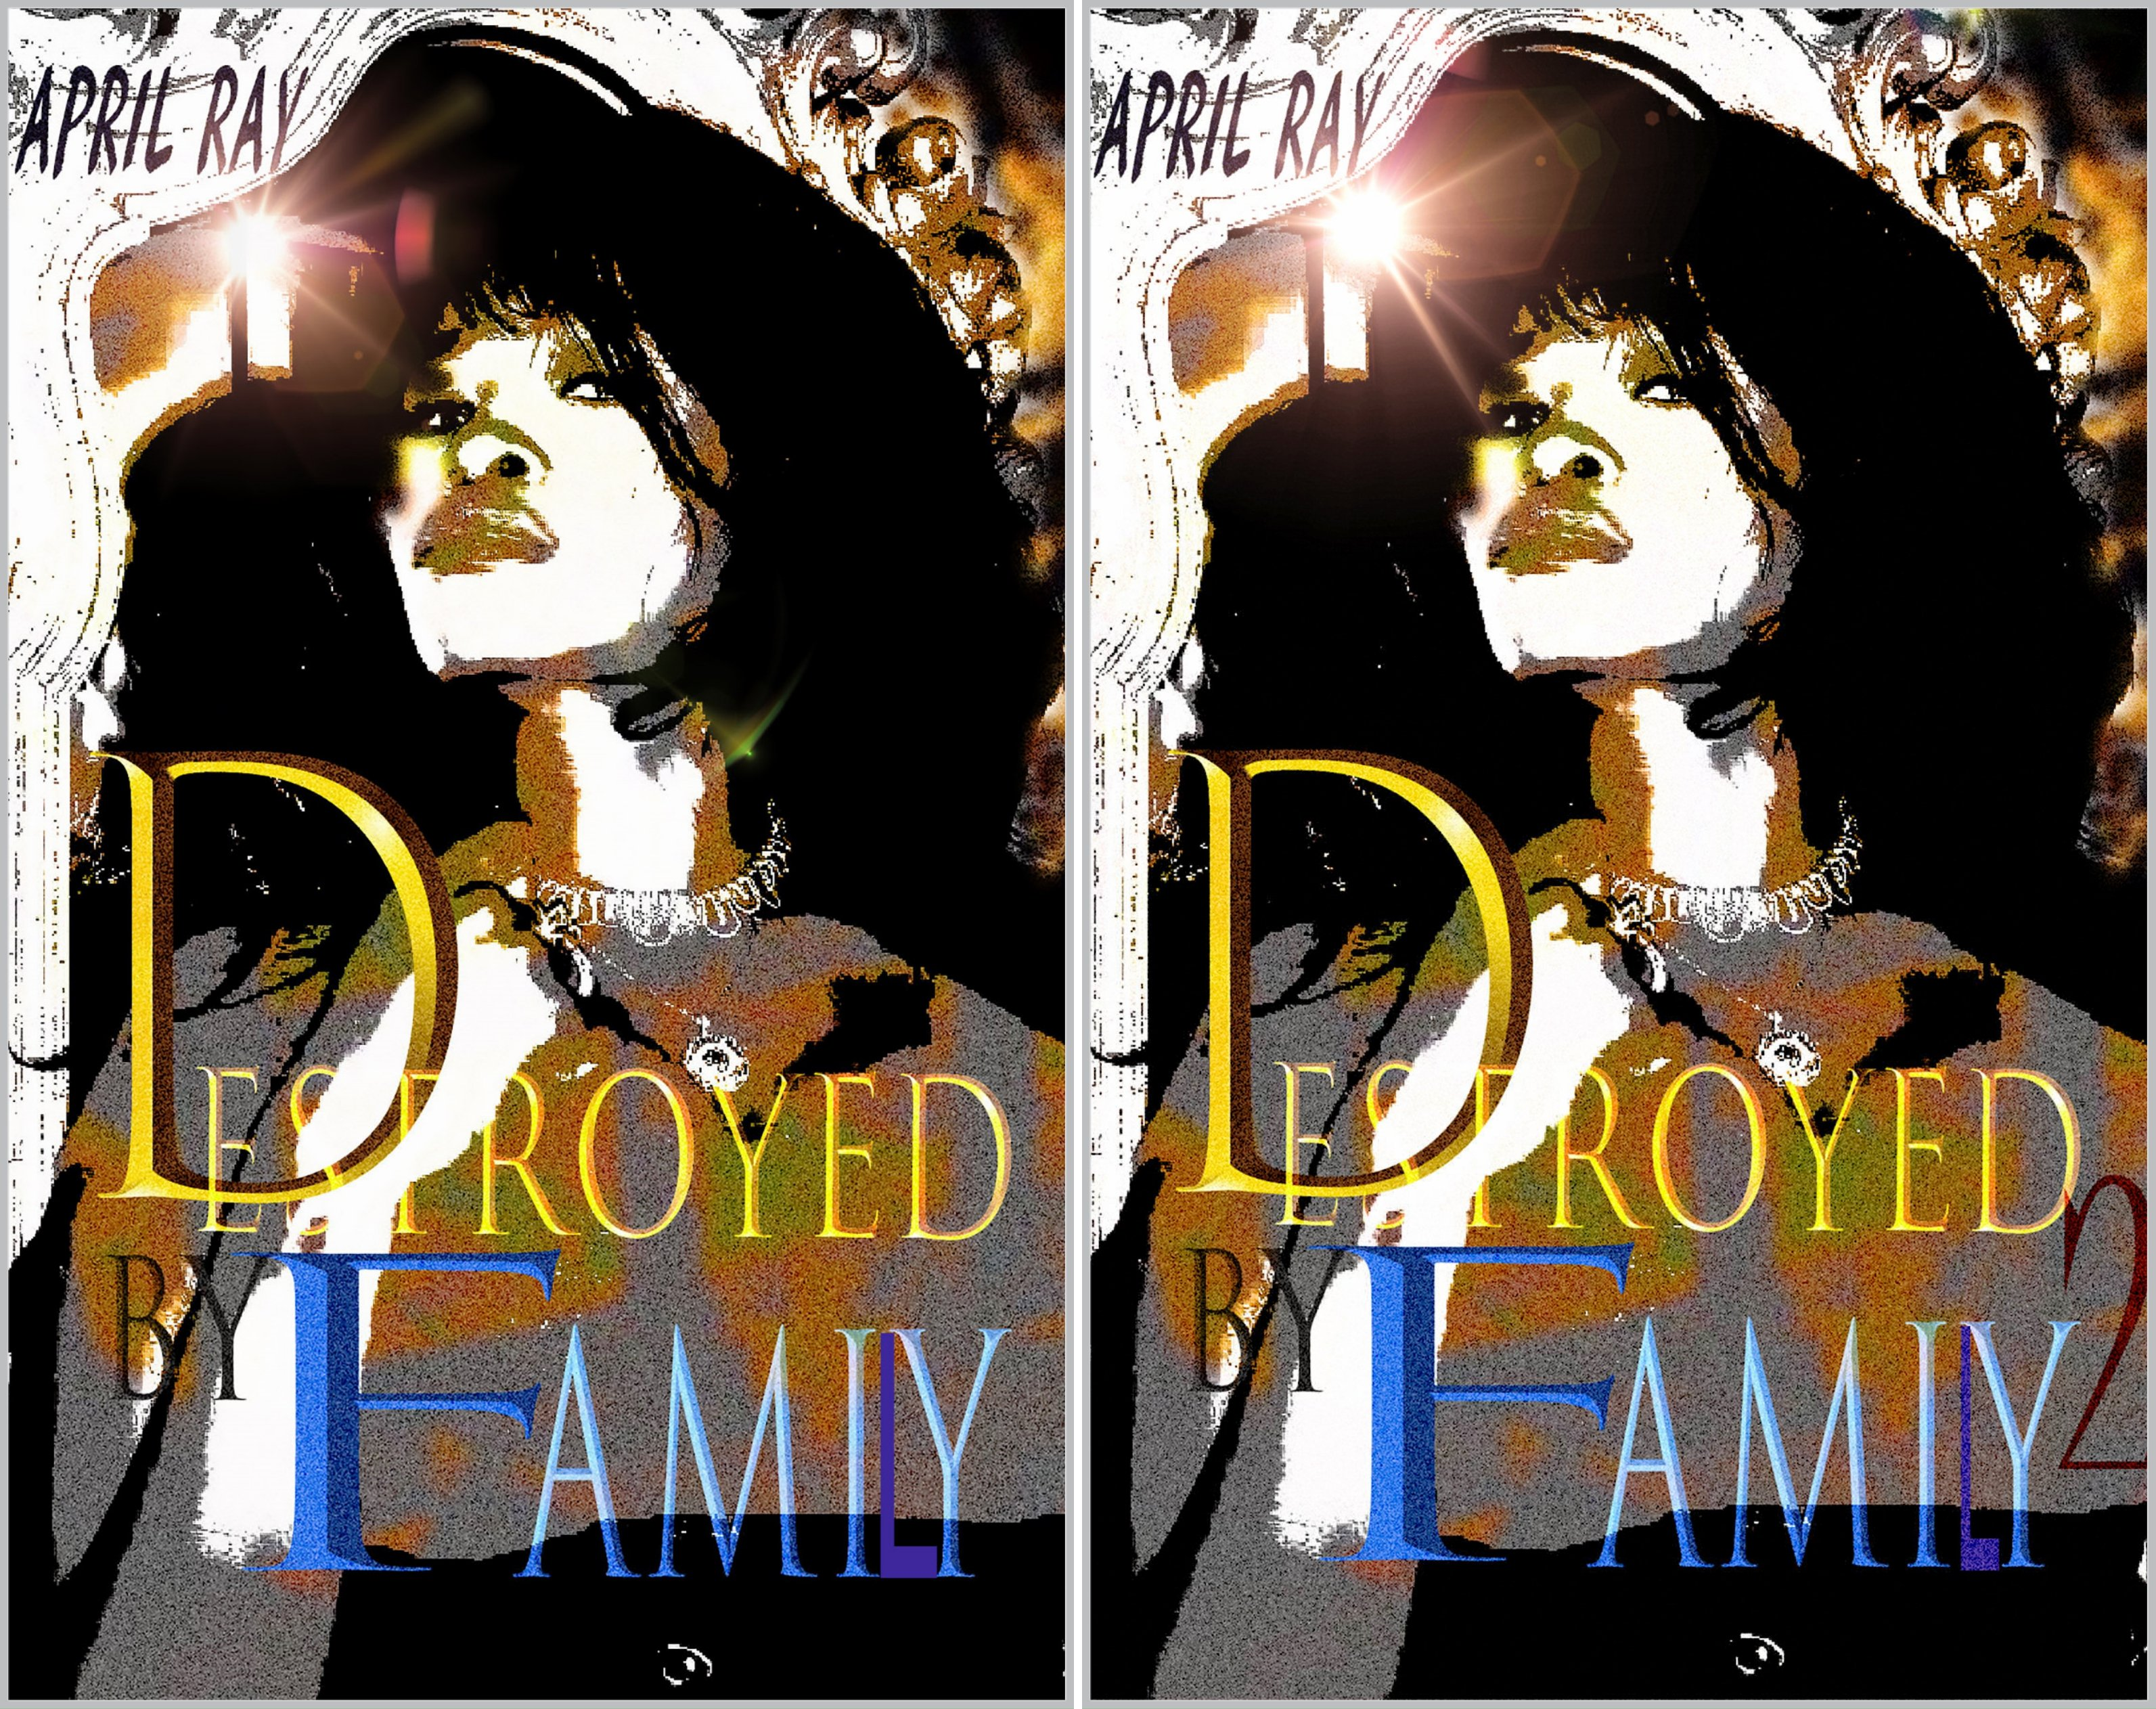 Destroyed by Family (2 Book Series)